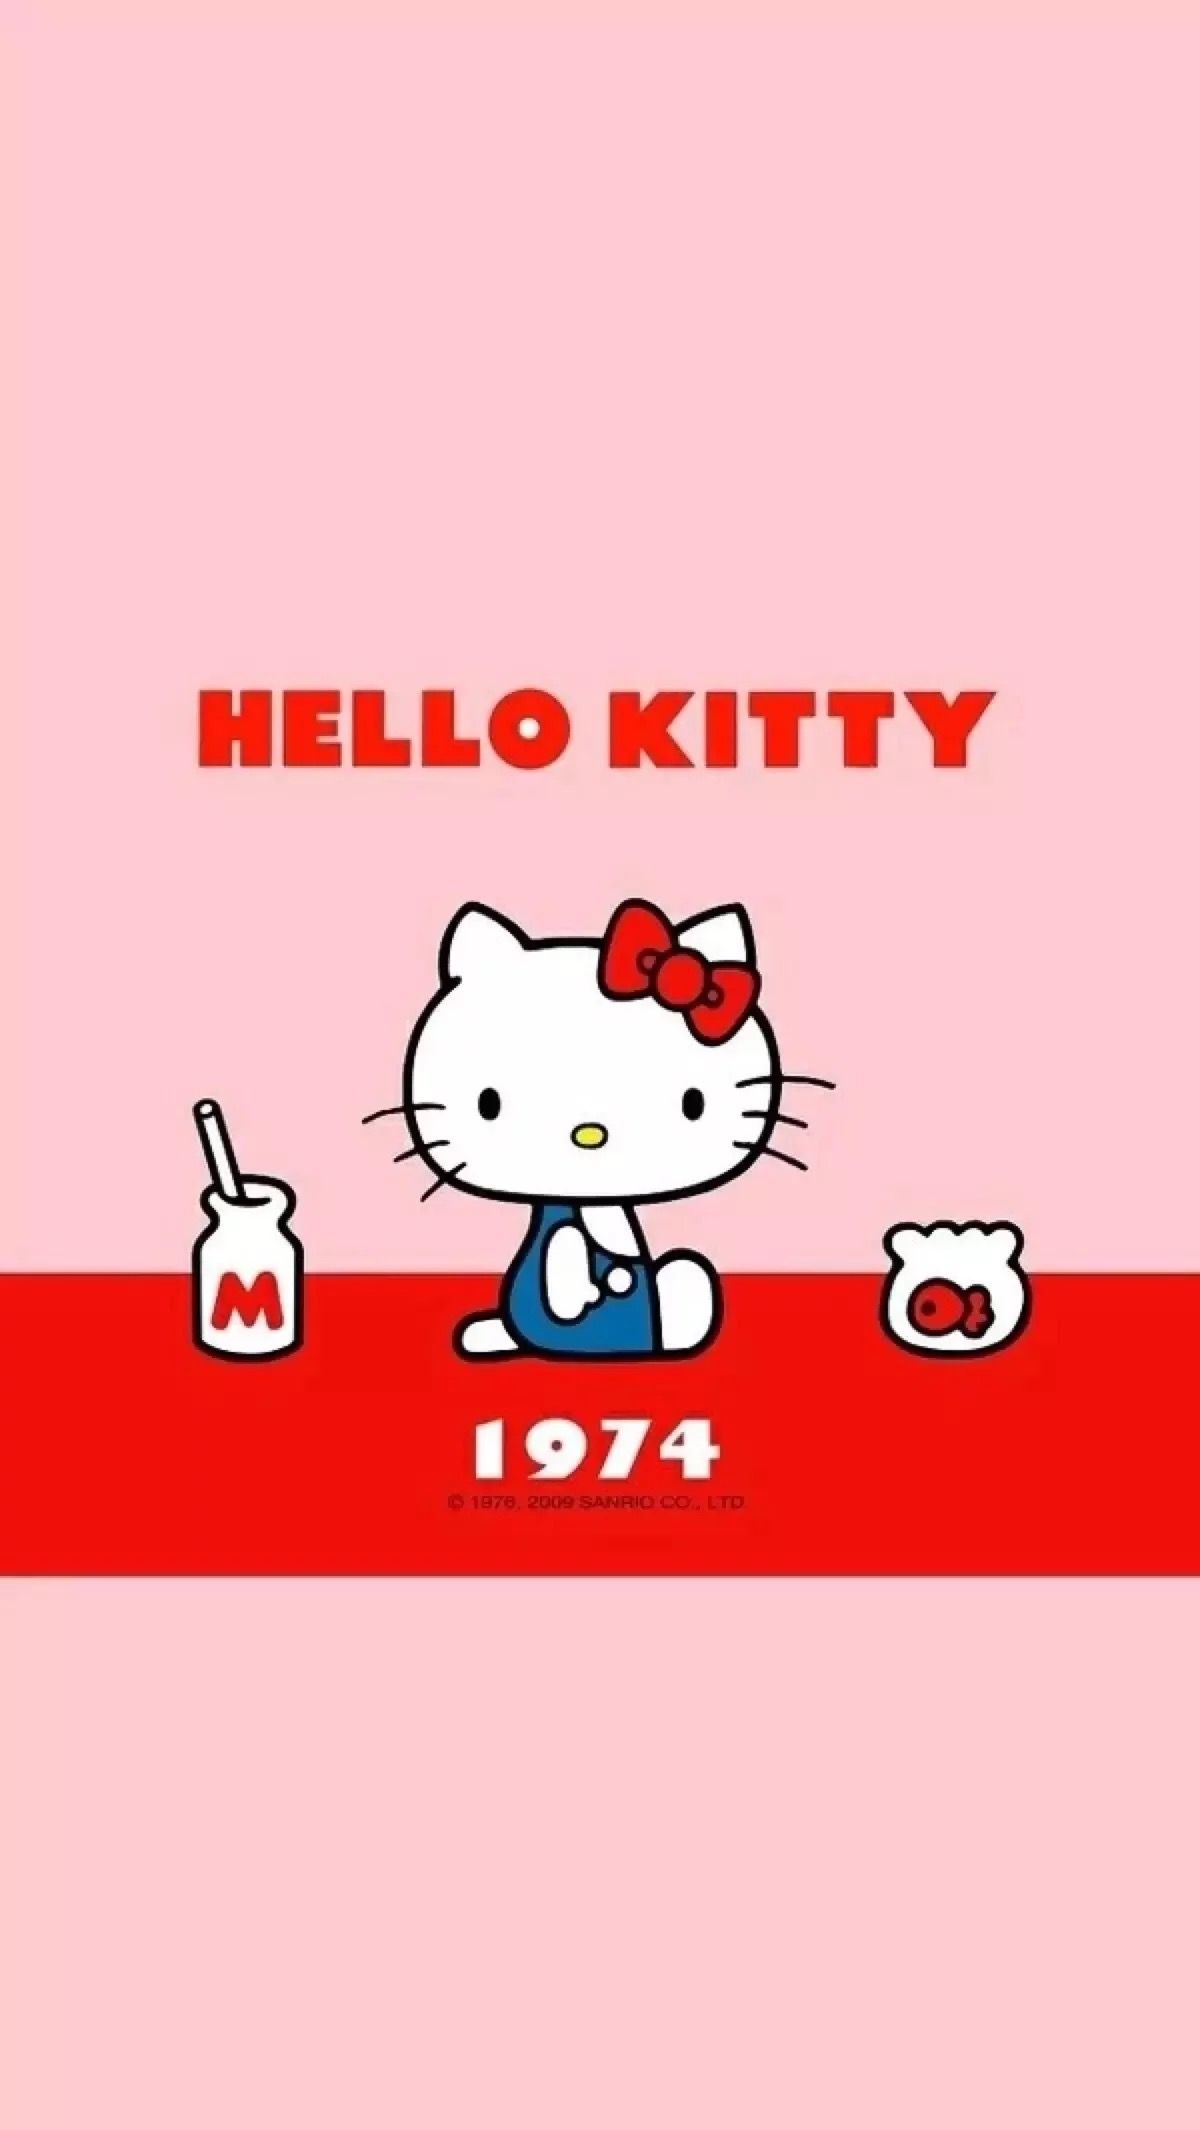 Pin By June Kt On Wallpapers Kt 9 Kitty Hello Kitty Hello Kitty Images